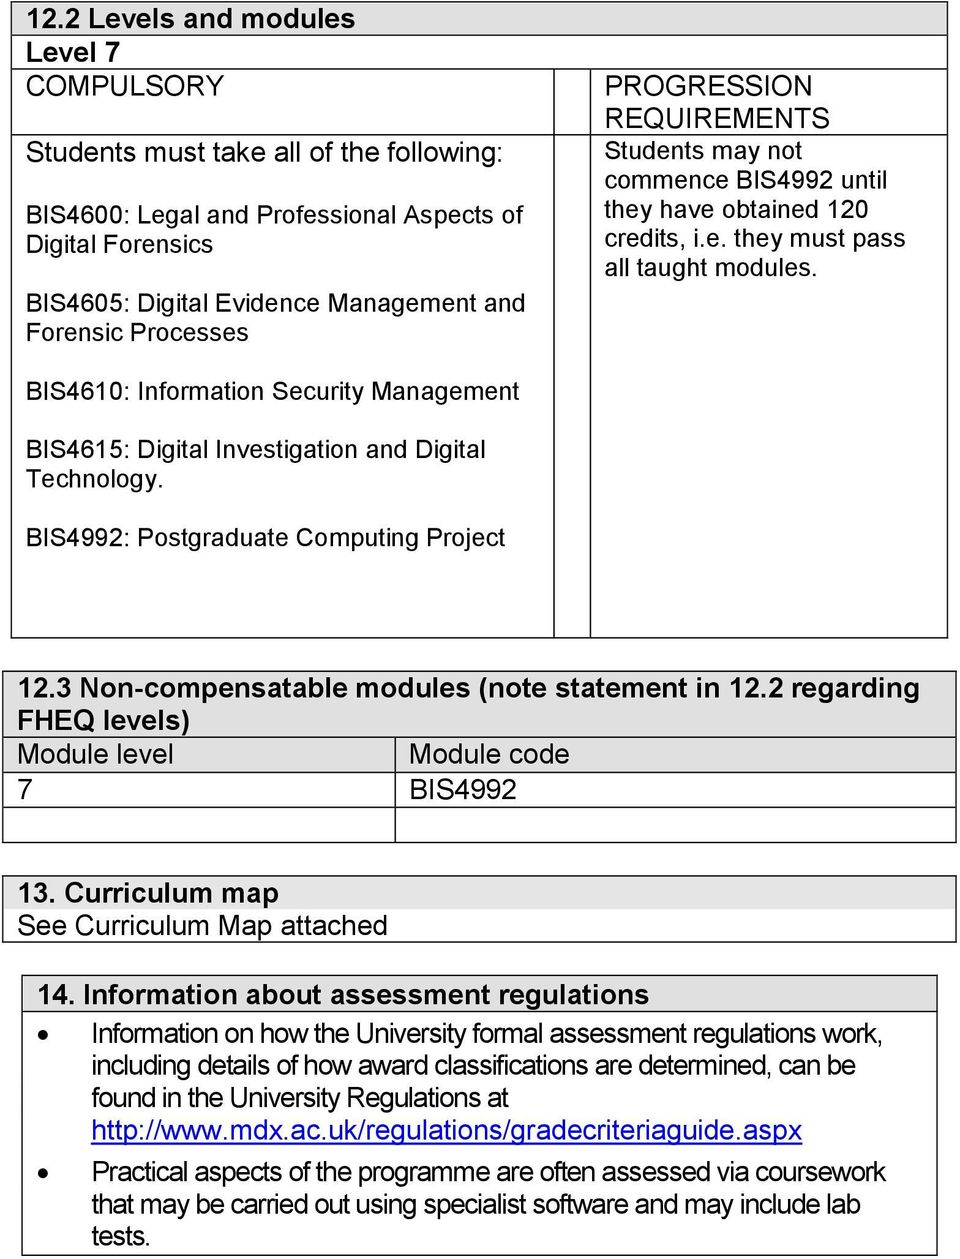 BIS4610: Information Security Management BIS4615: Digital Investigation and Digital Technology. BIS4992: Postgraduate Computing Project 12.3 Non-compensatable modules (note statement in 12.